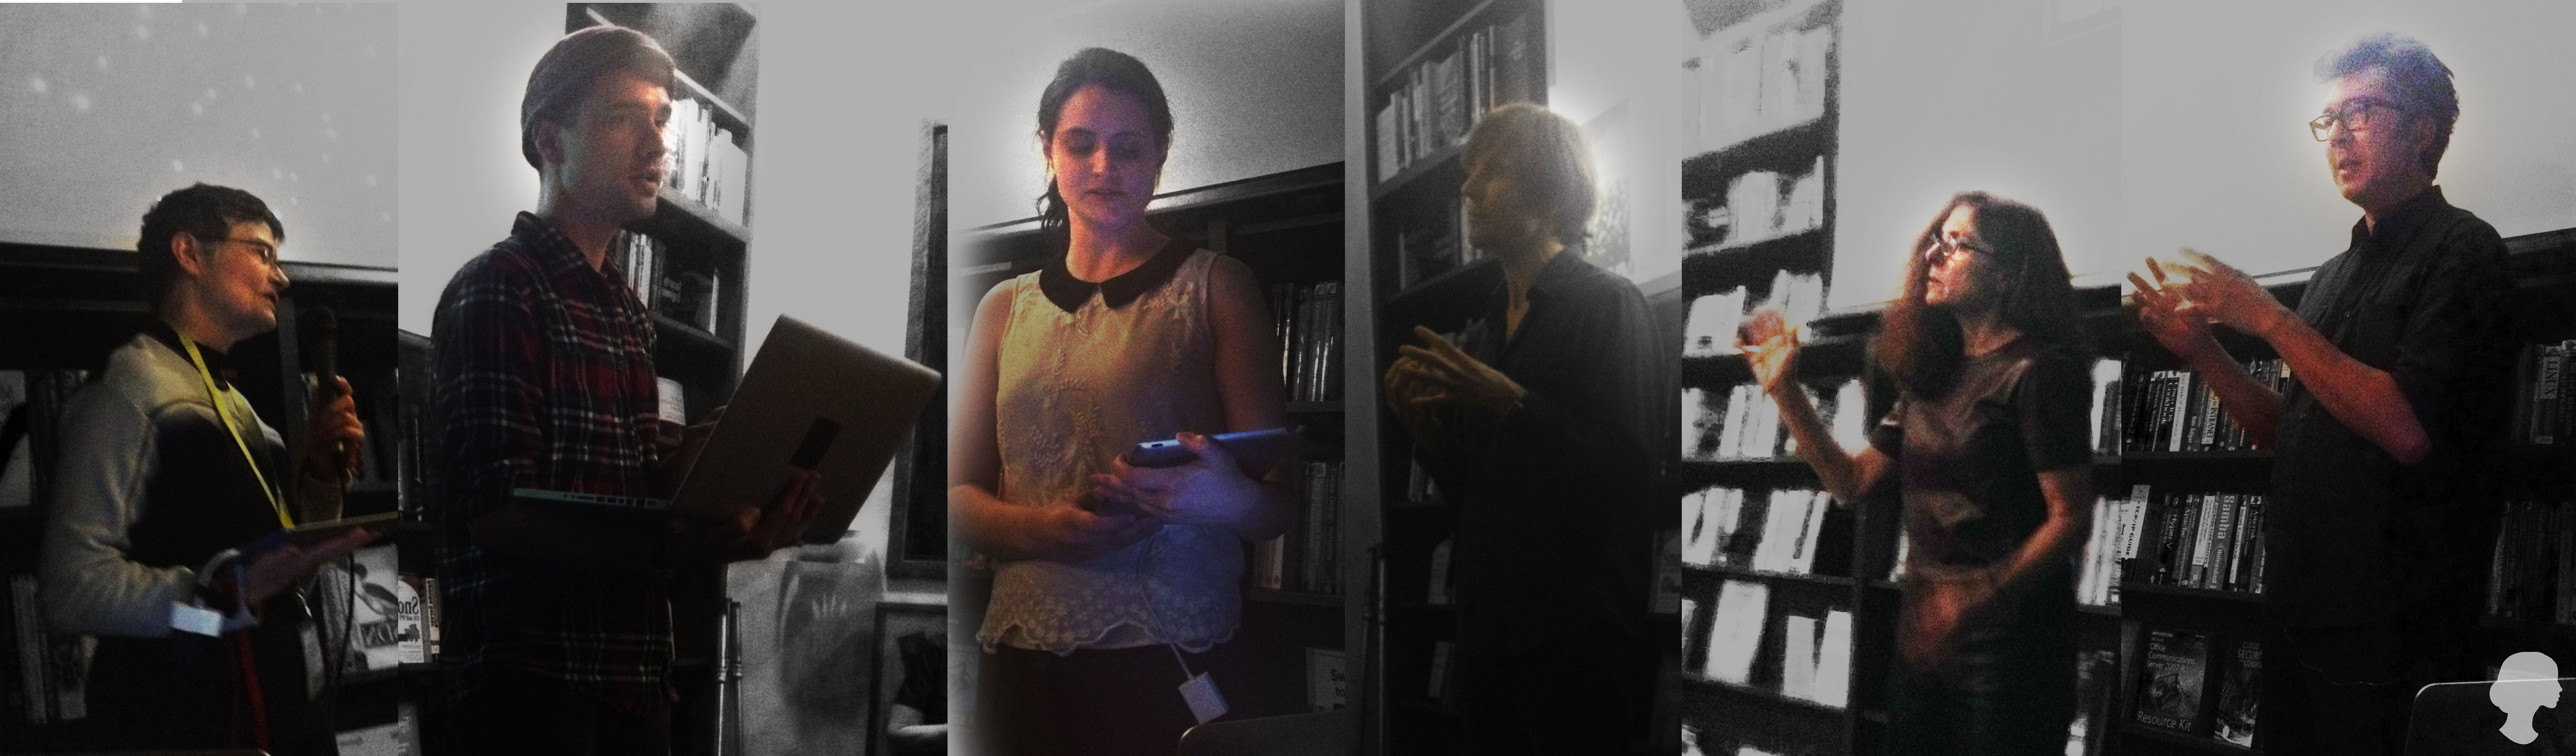 Readings of Interactive and New Media work by Members of the Electronic Literature Organization